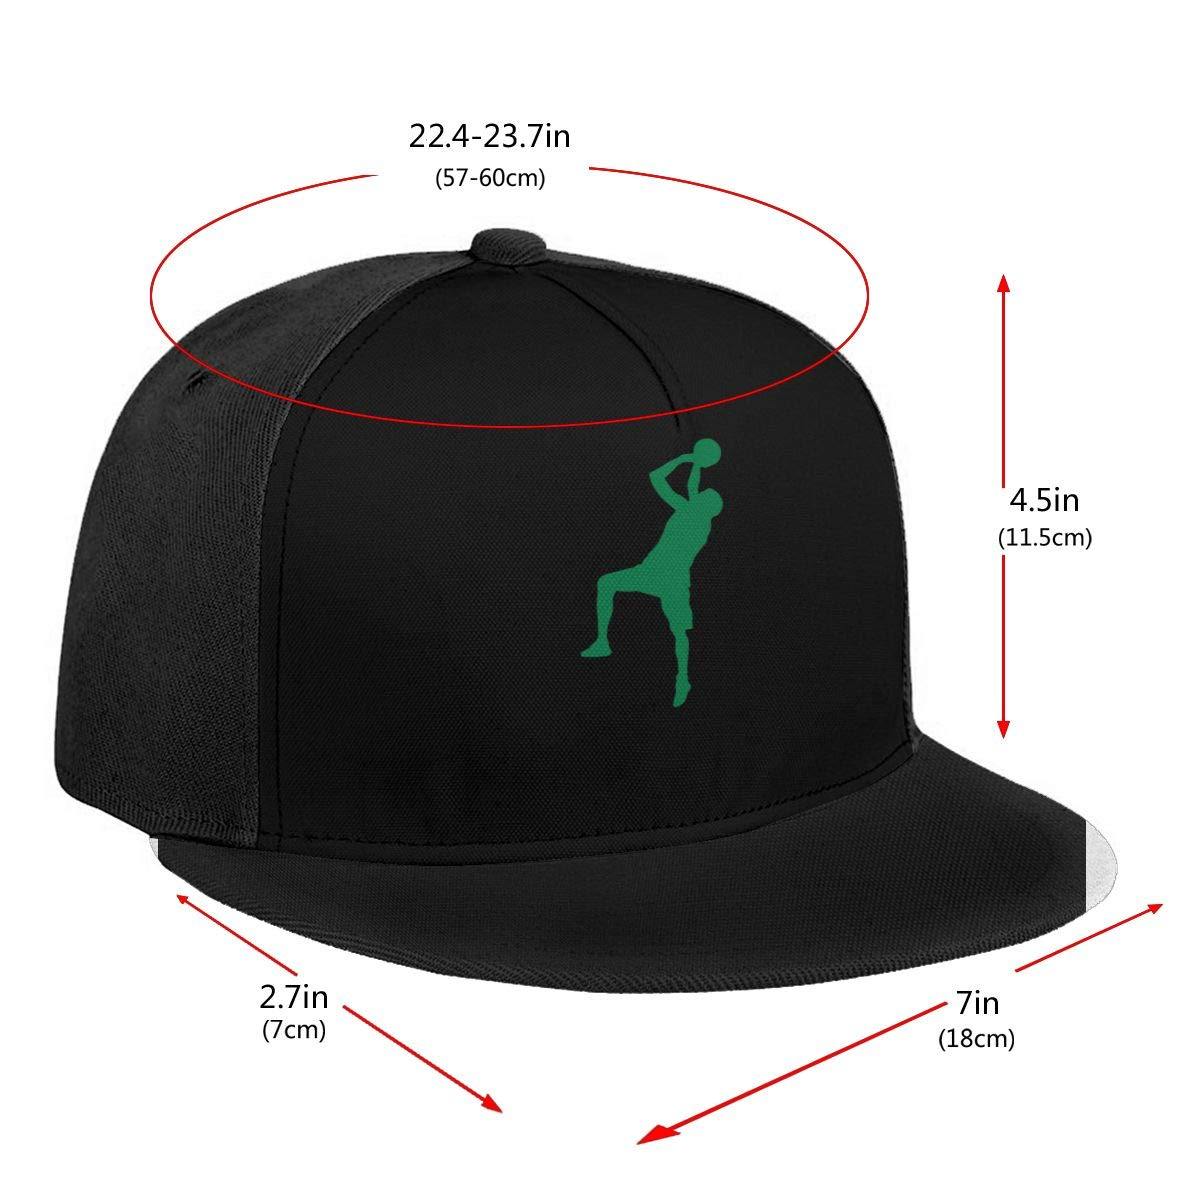 DeniCar Unisex Adjustable Baseball Caps 30K Pionts Dirk-Nowitzki Skull Cap Black